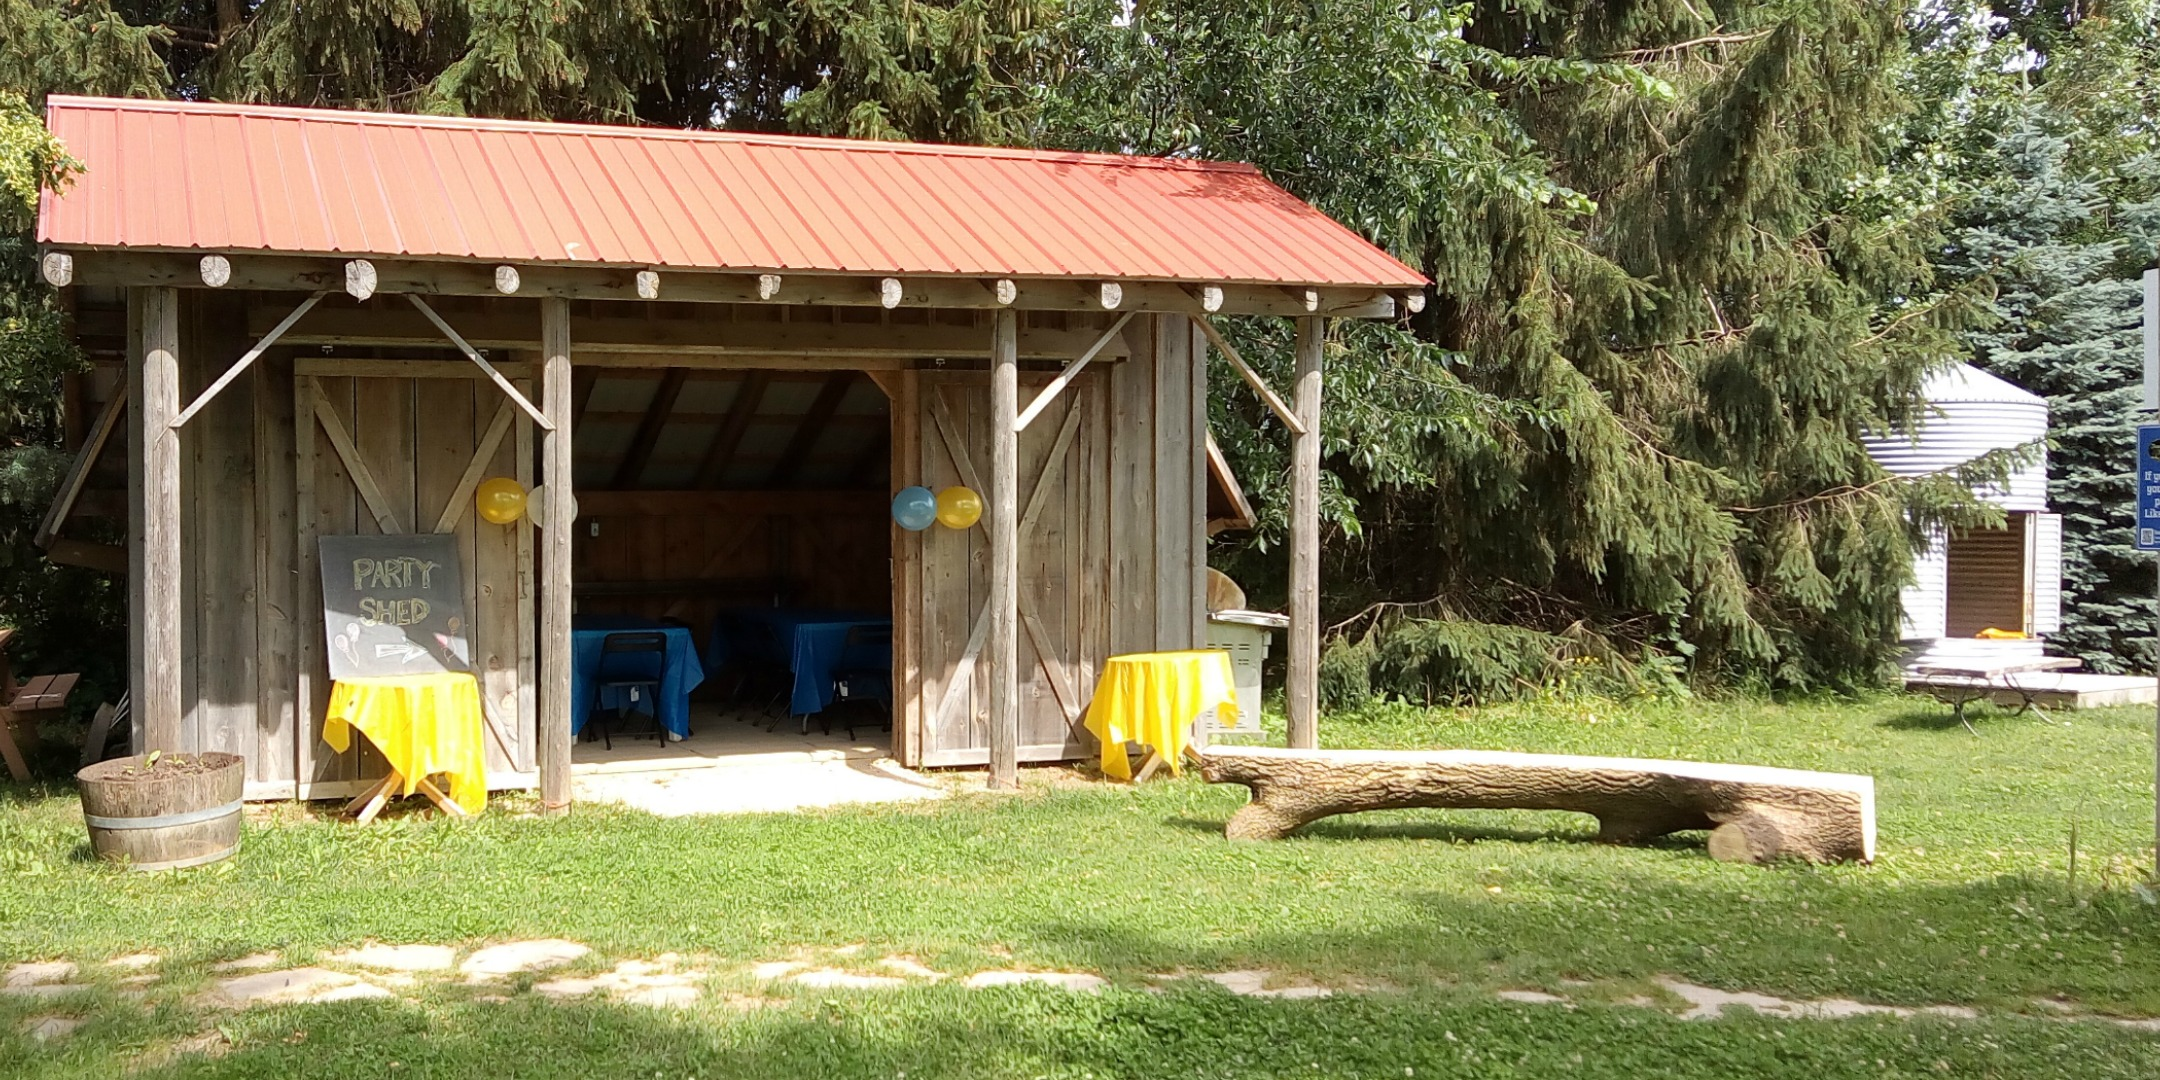 Mapleton's Organic Party Shed